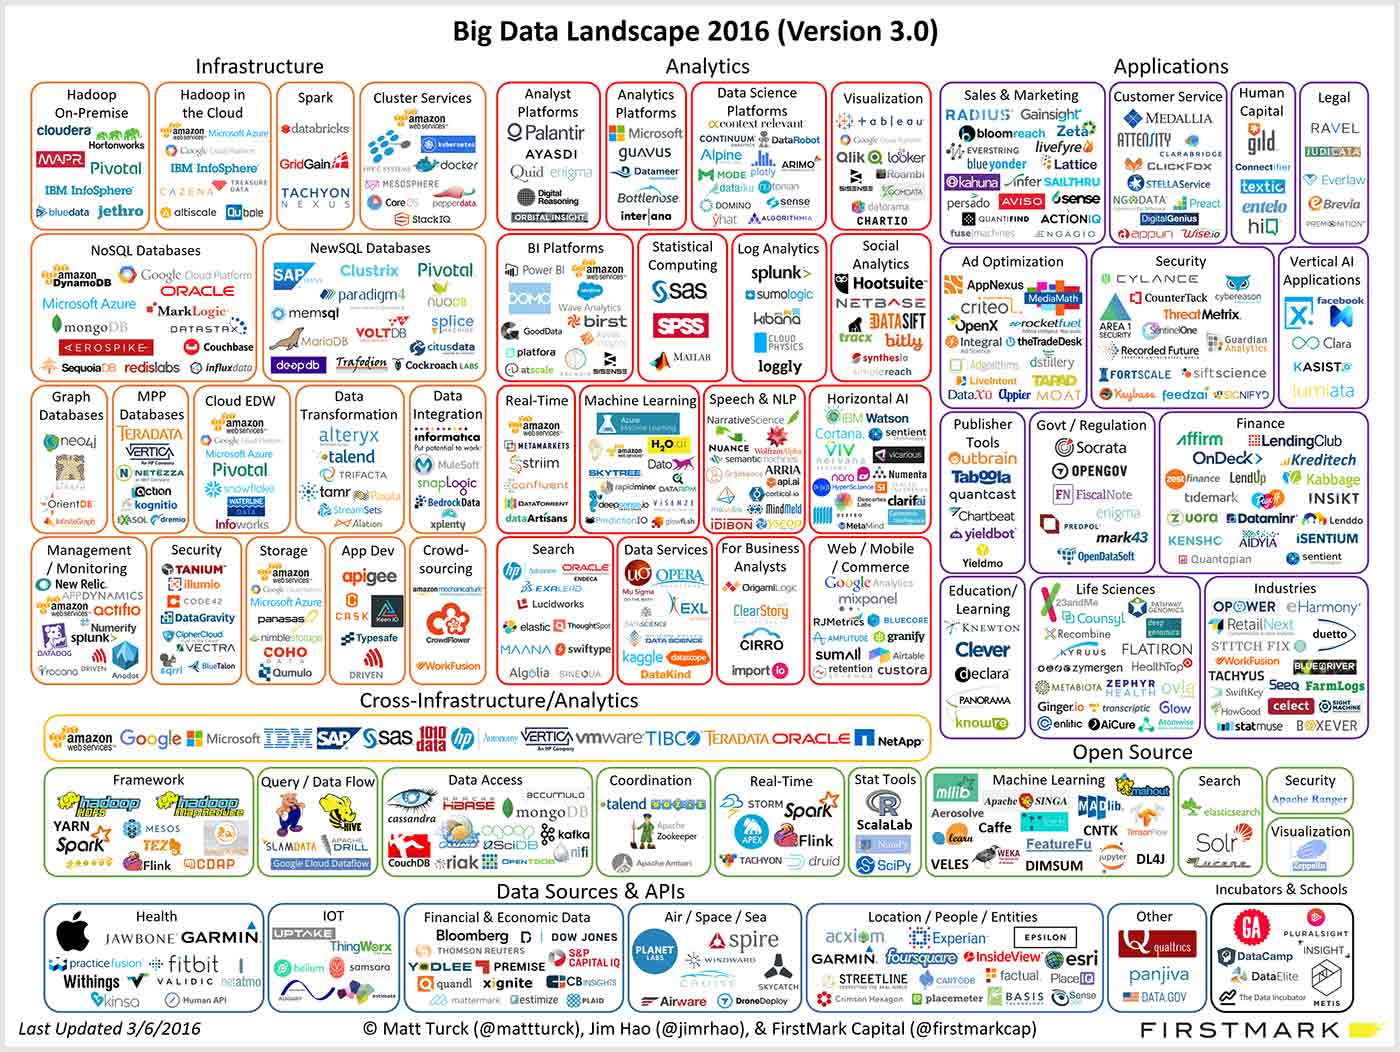 Landscape of big data applications